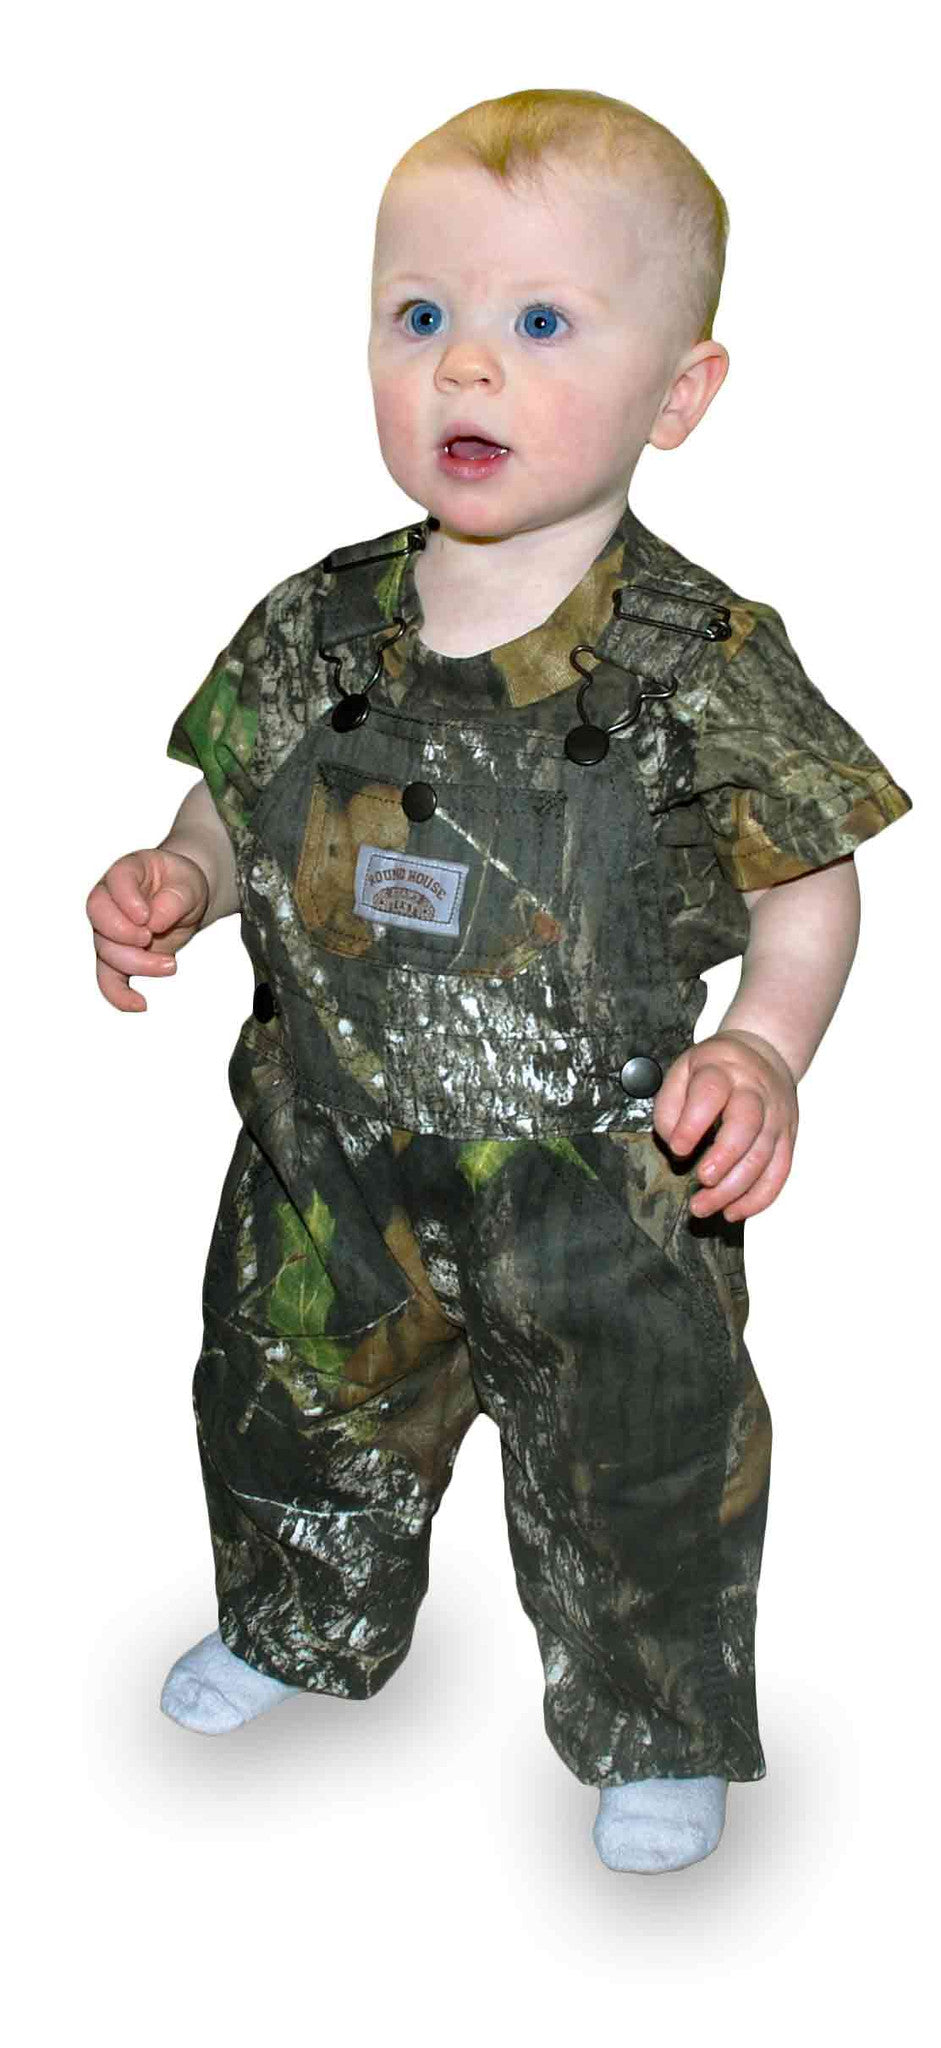 #177 Mossy Oak Break-Up Kids BIB OVERALL Made in USA